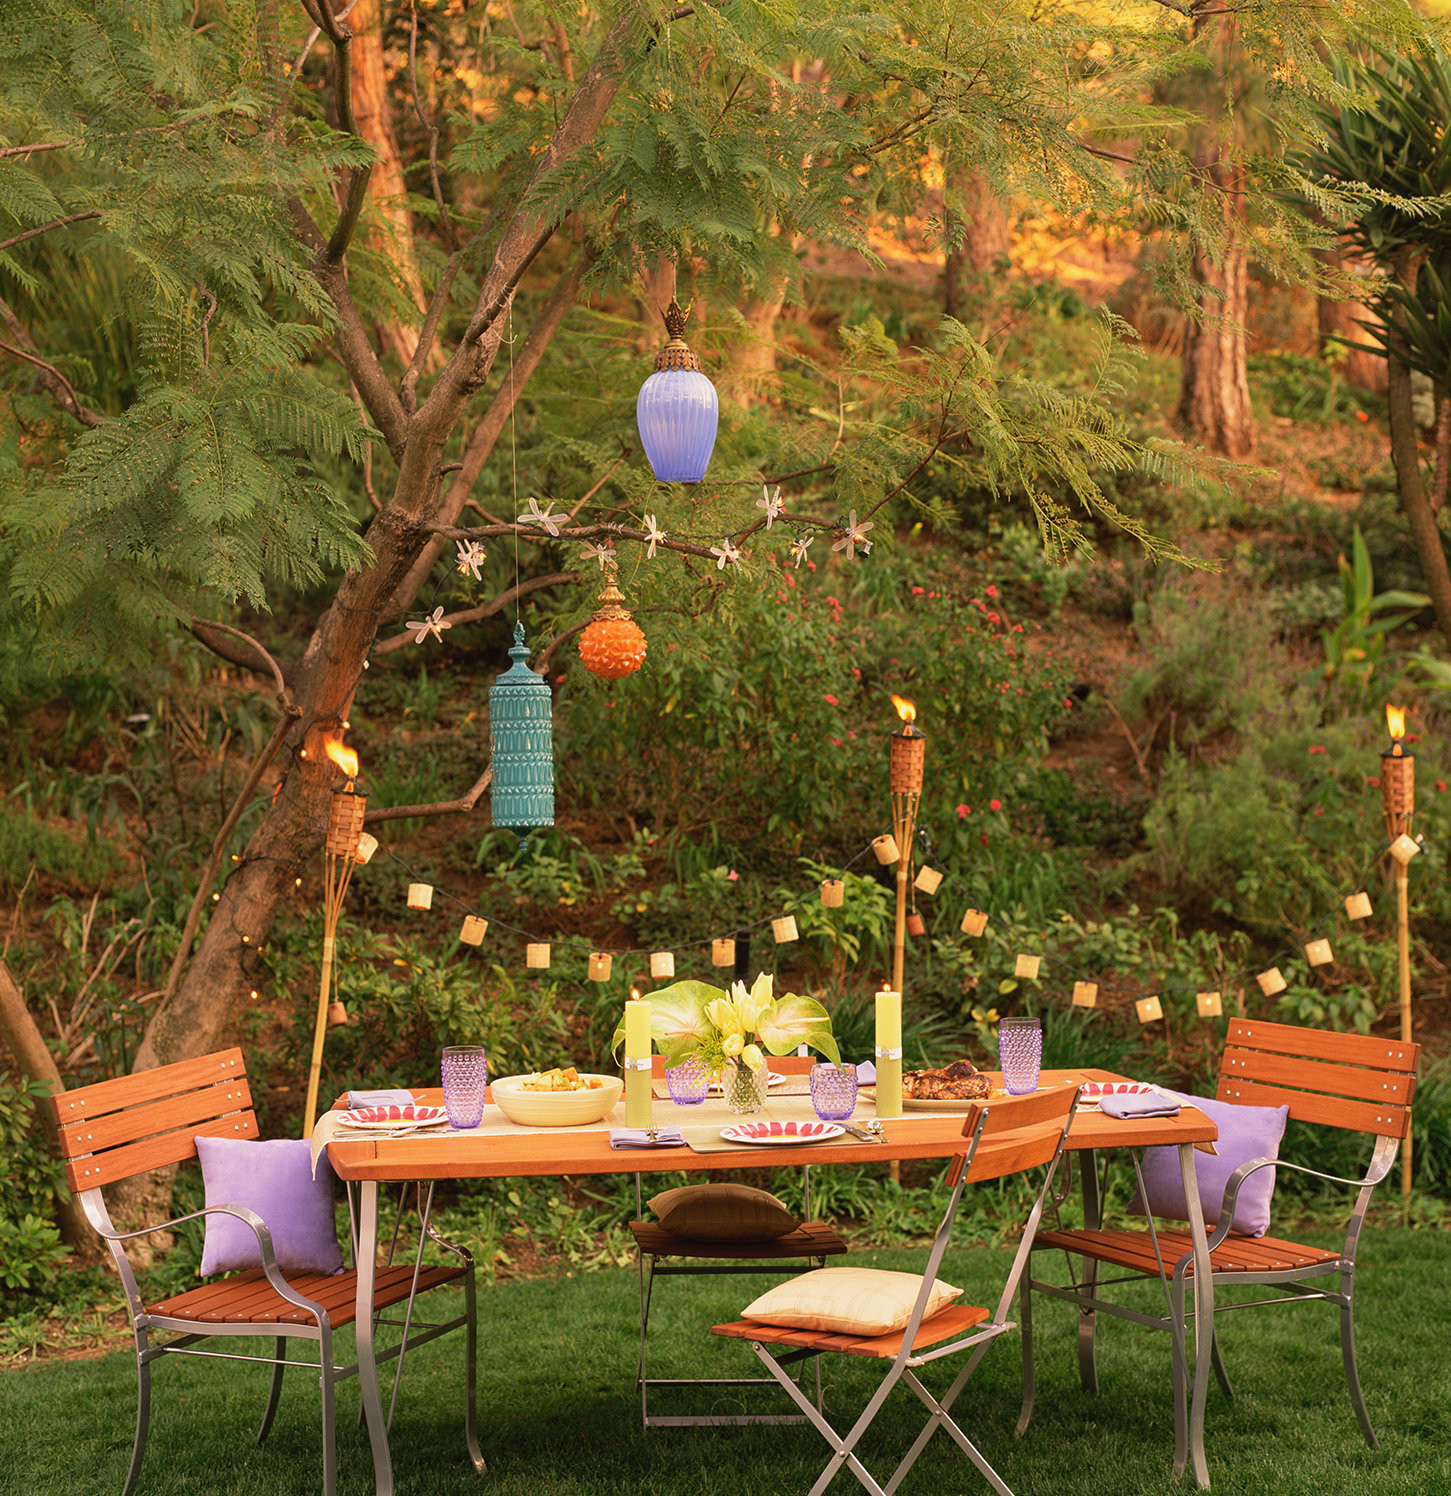 Backyard Party Seating Ideas  17 Outdoor Party Ideas for an Effortless Backyard